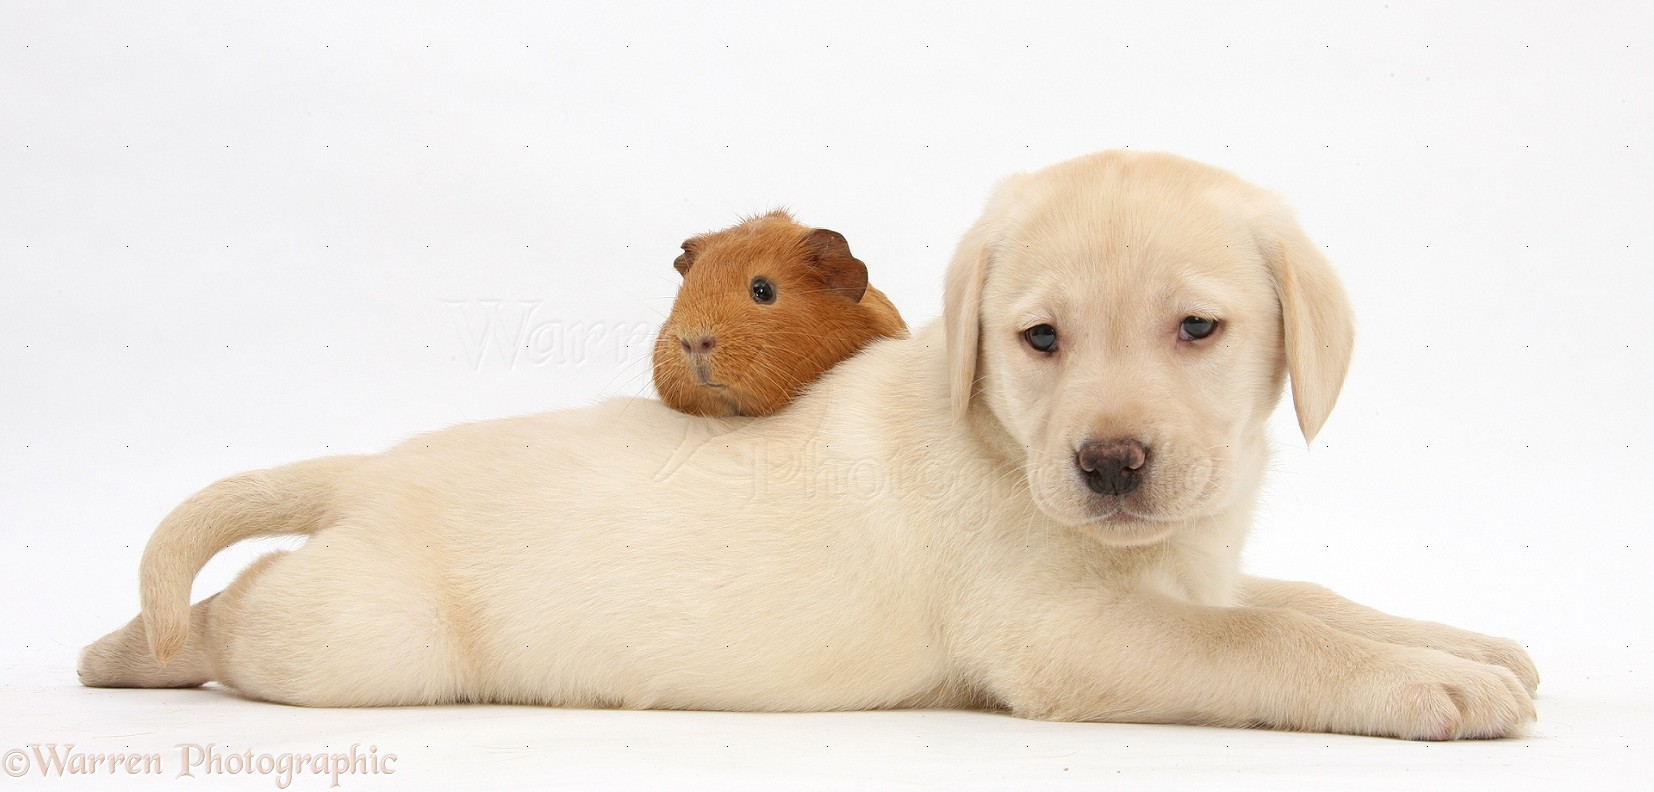 Pets: Yellow Labrador pup and red Guinea pig photo - WP25586